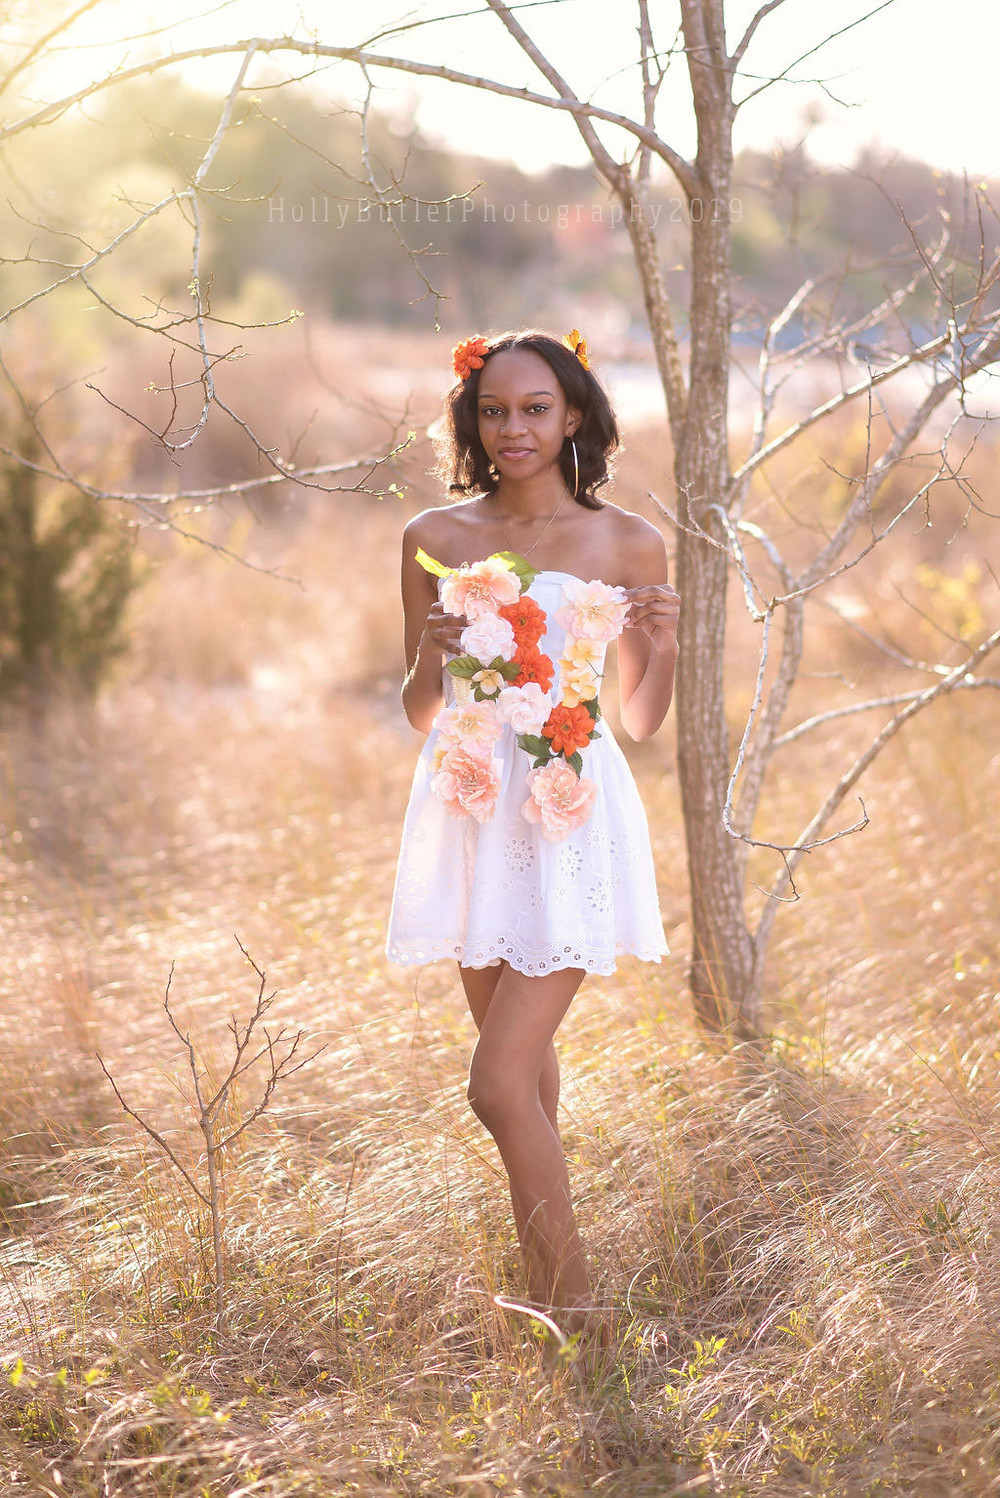 High School Senior | Holly Butler Photography